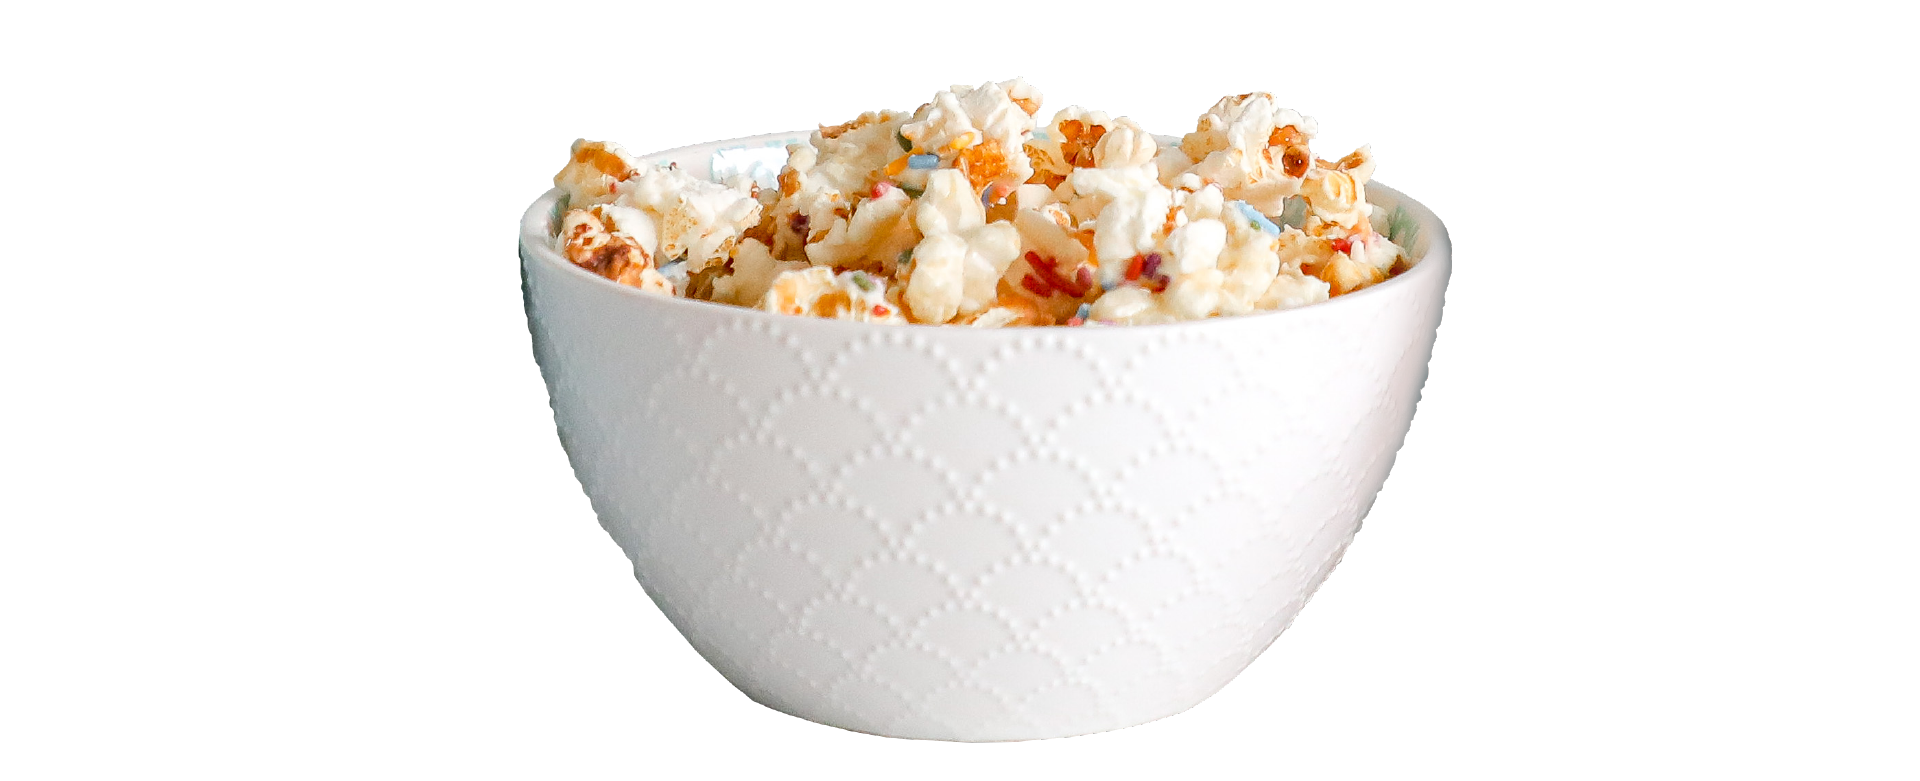 bowl of drizzled popcorn